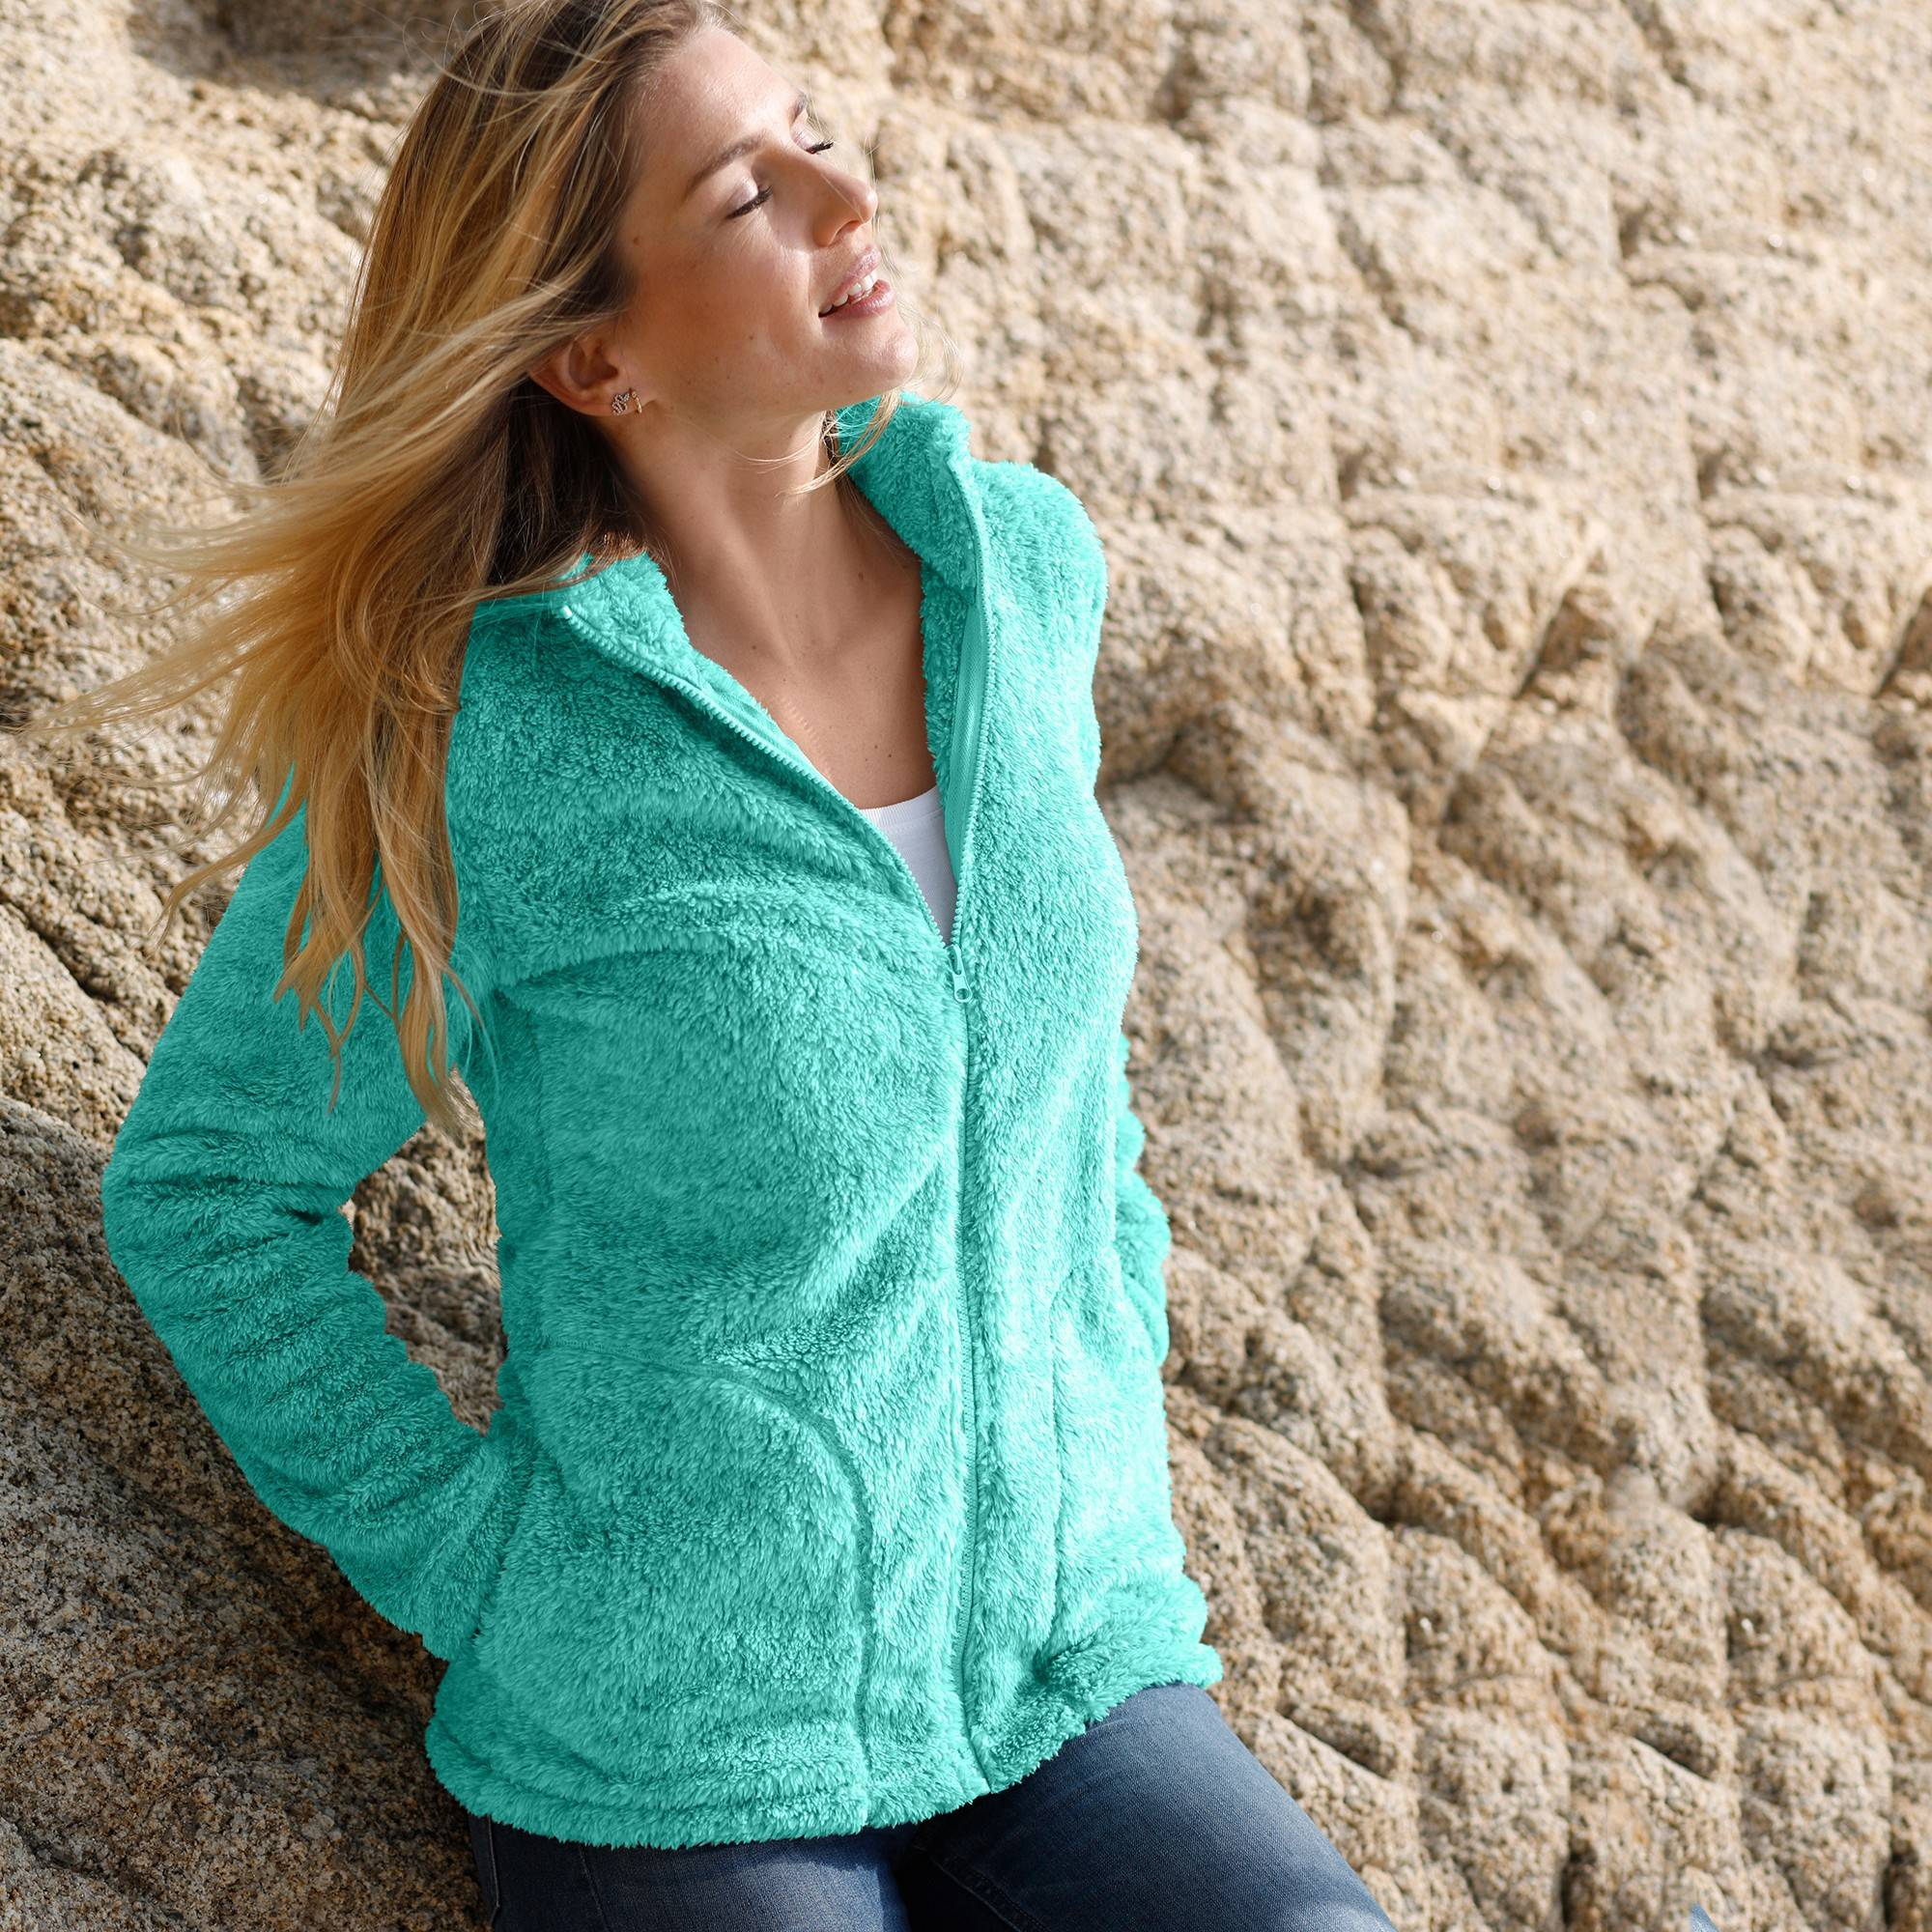 Casual Collection Veste maille peluche - Turquoise - Taille : 50 - Blancheporte